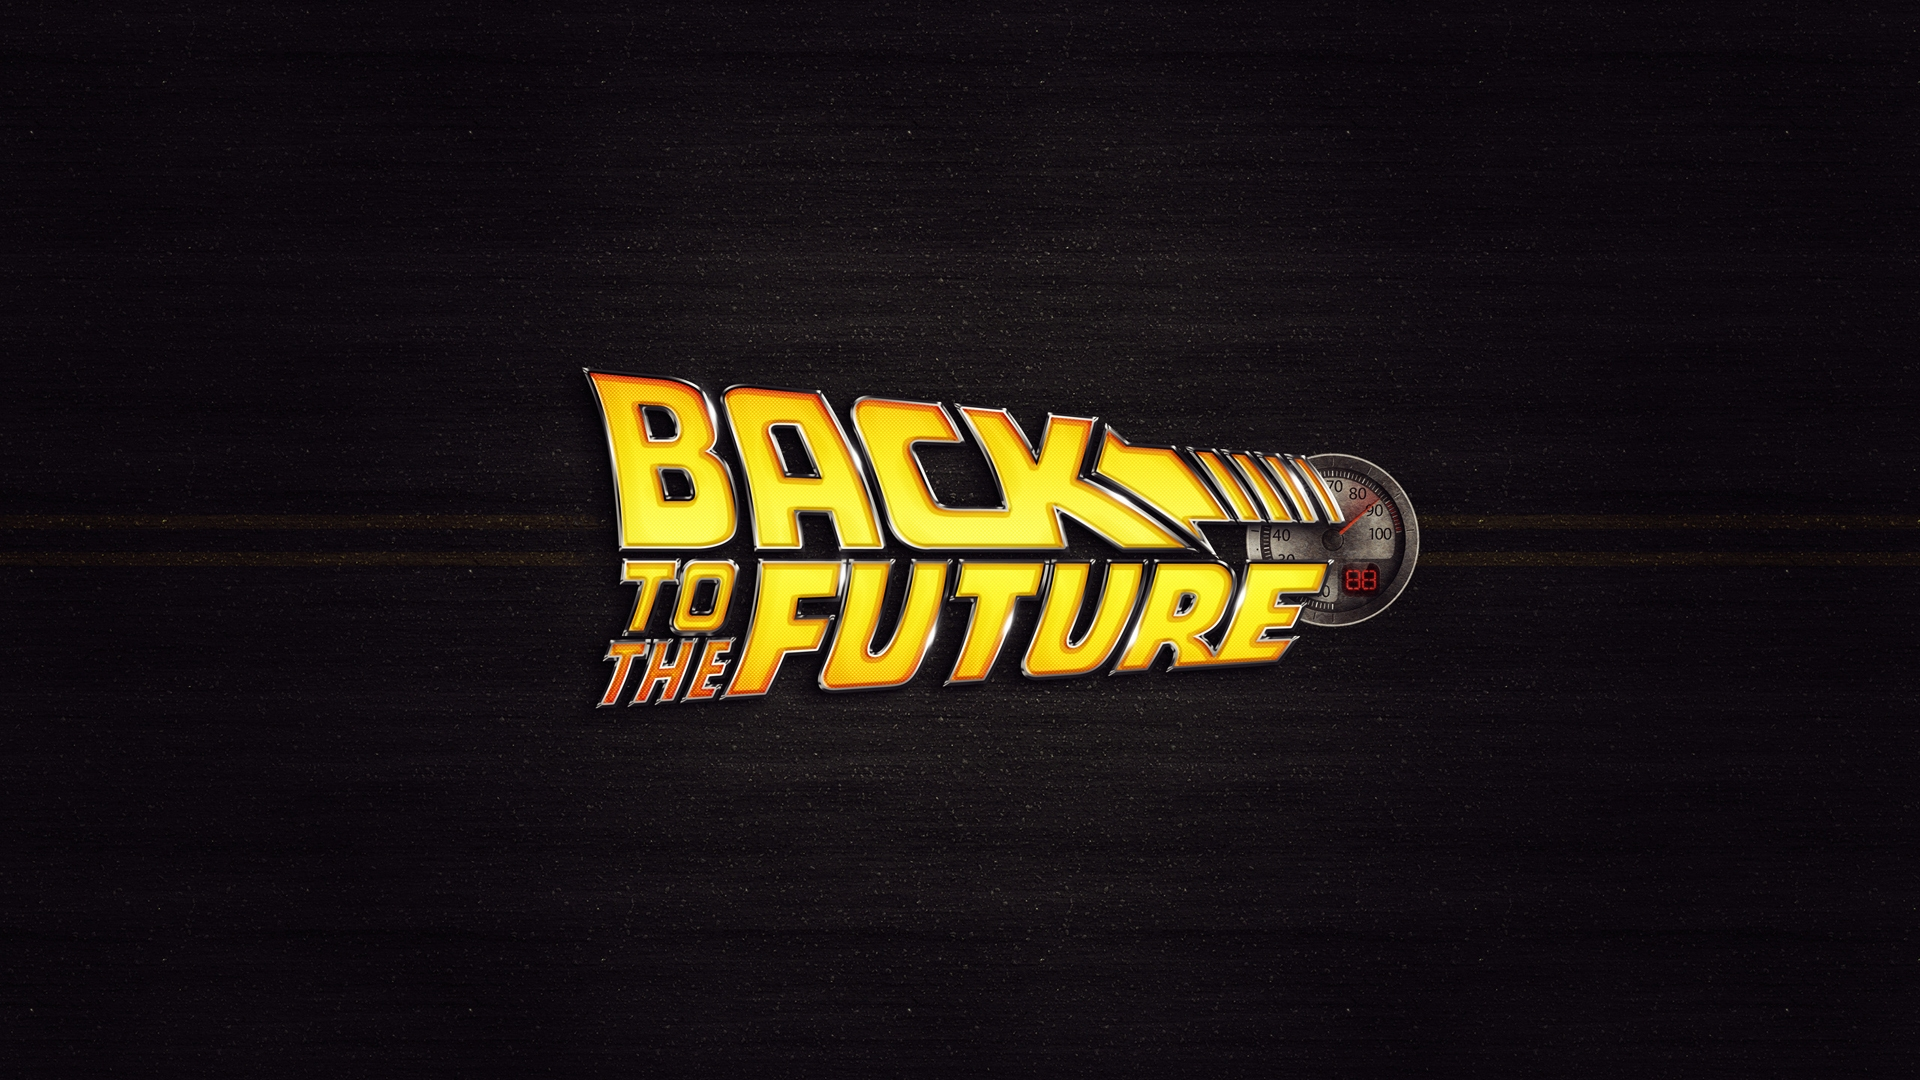 Back-To-The-Future-http-hotcelebz-com-back-to-the-future-wallpaper-wp3602914